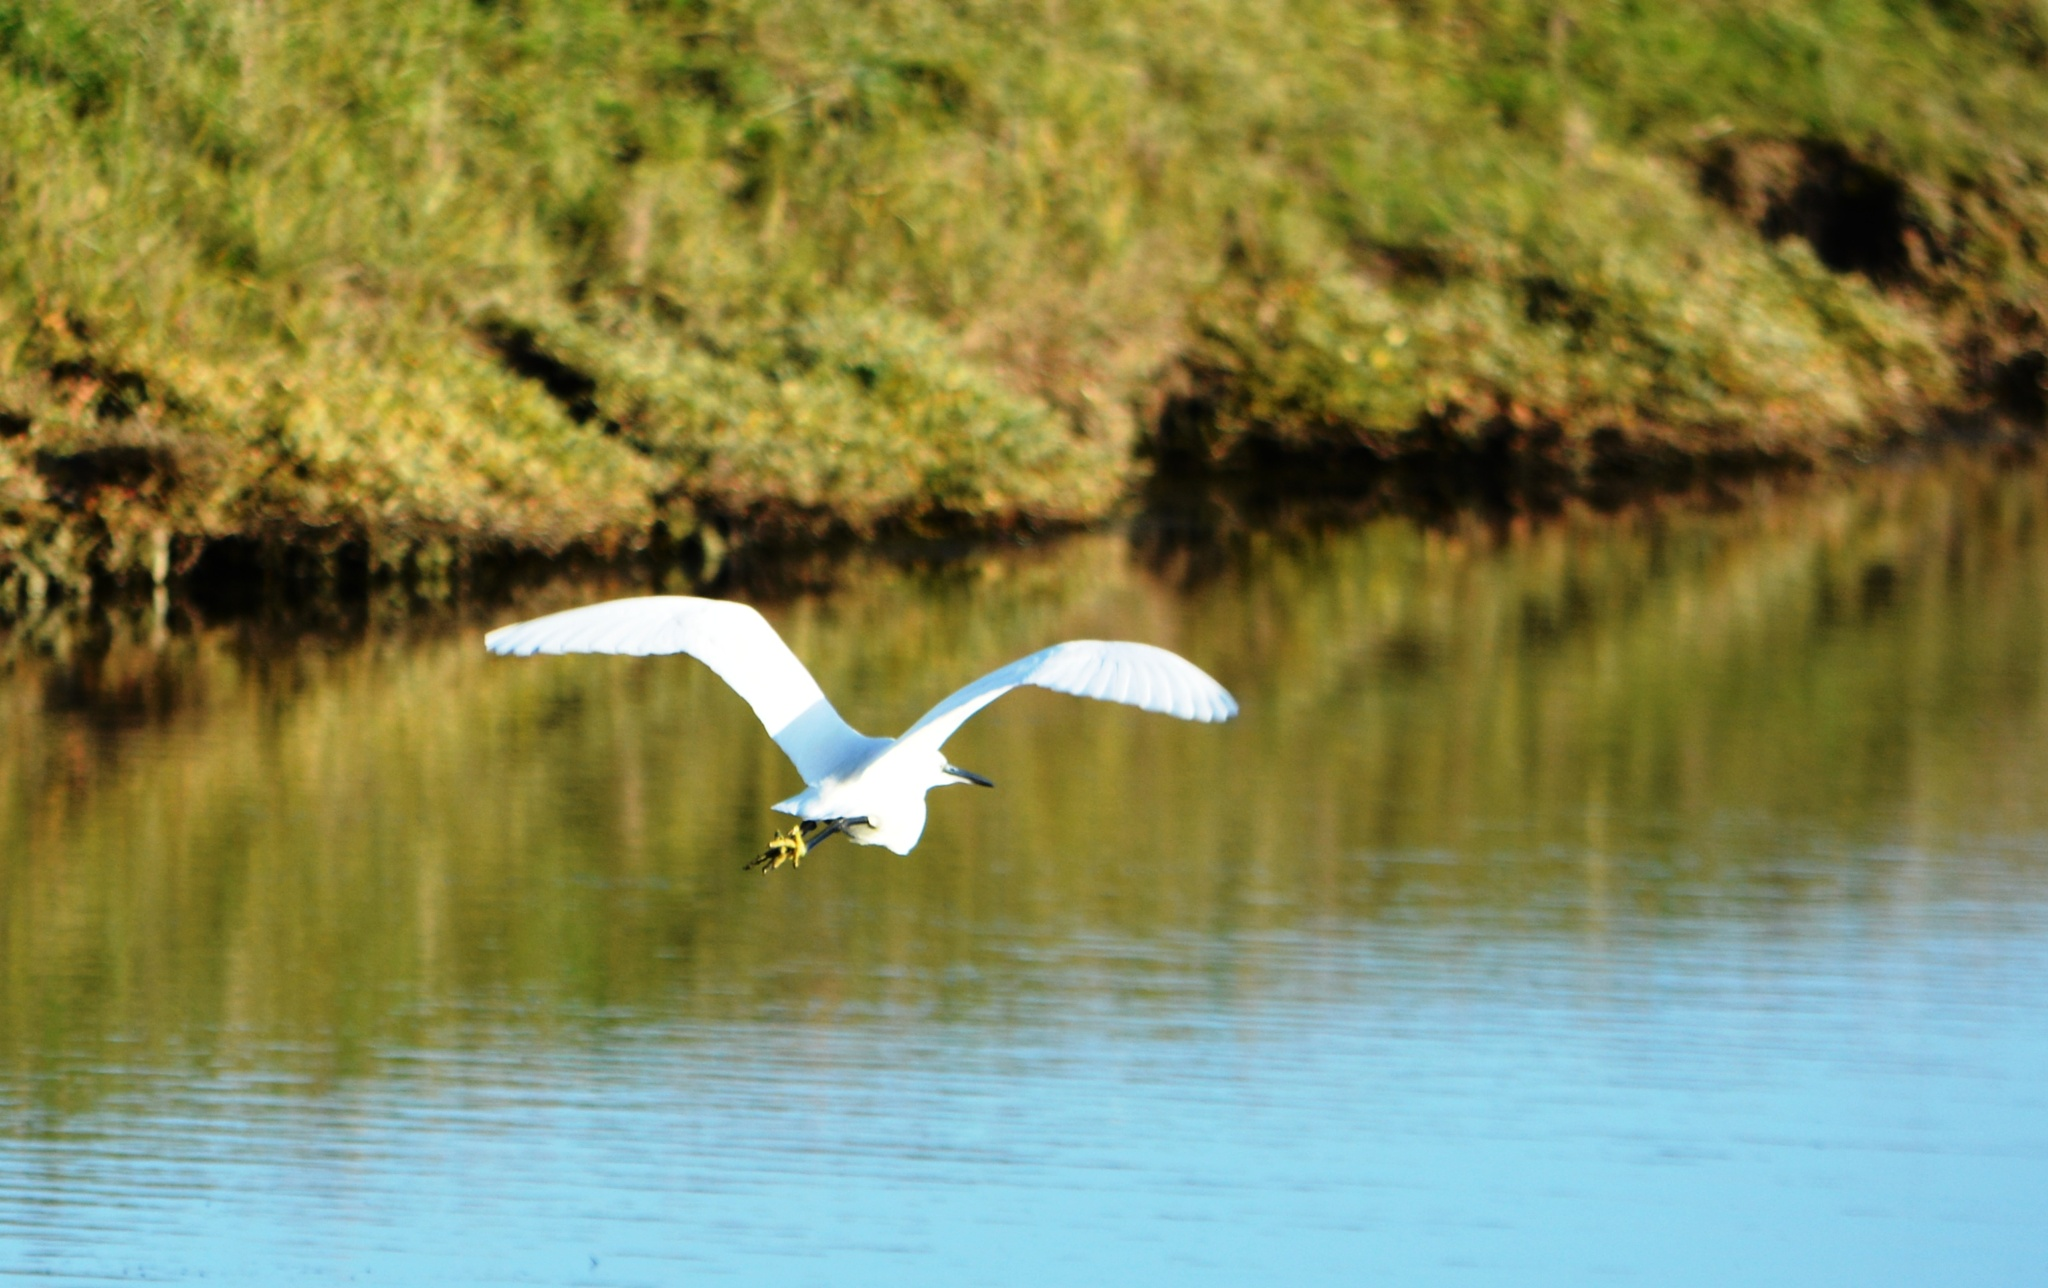 Great white heron by alison16